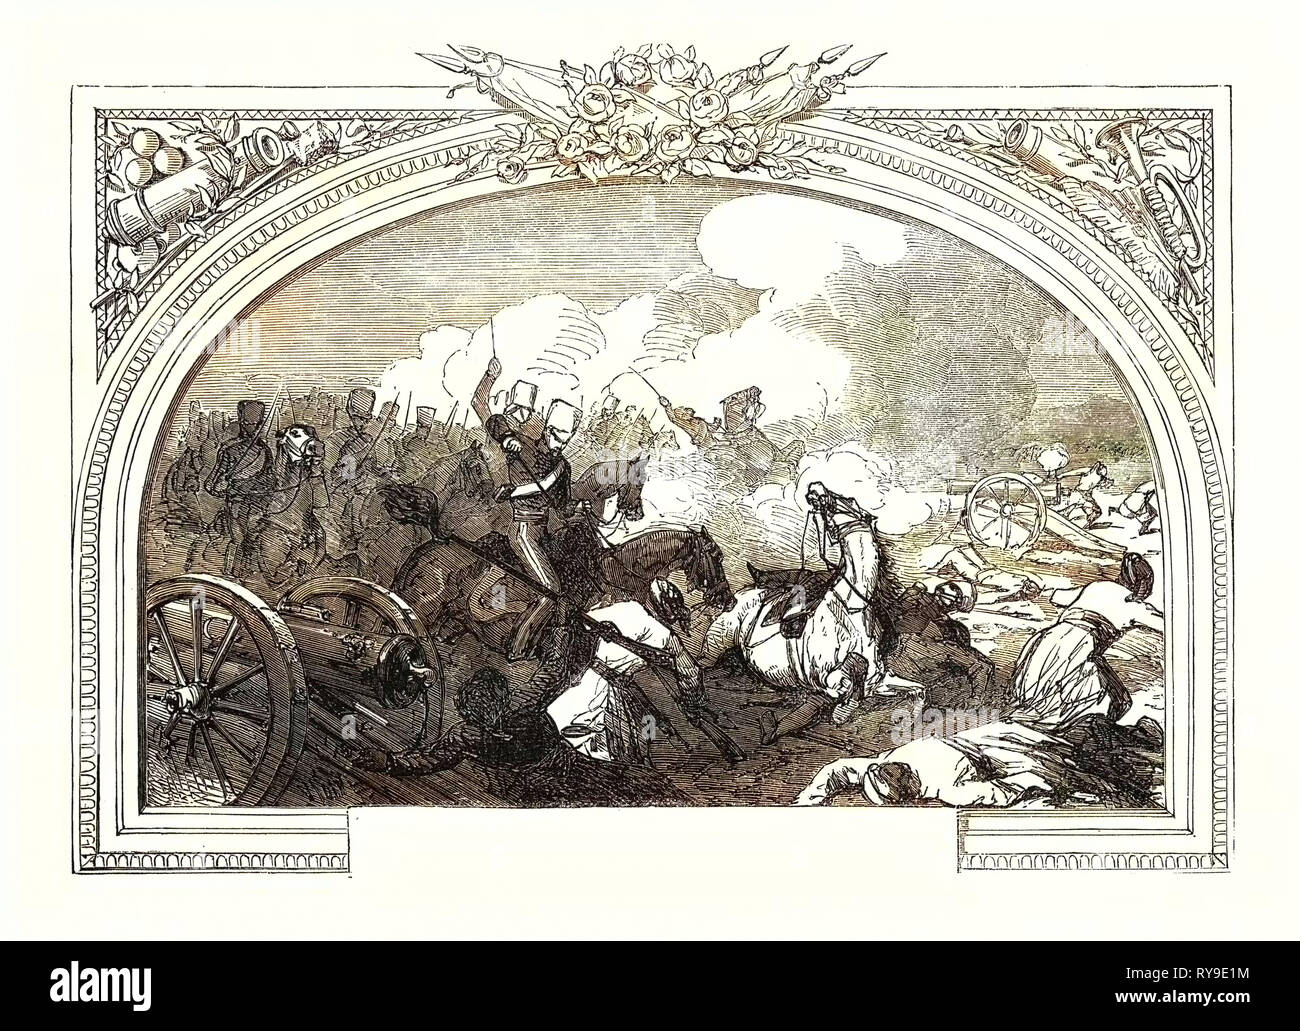 Battle of Ferozeshah, (Lord Gough,) December 21st, 1845, Between the British and the Sikhs, at the Village of Ferozeshah in Punjab. The British Were Led by Sir Hugh Gough and Governor-General Sir Henry Hardinge, While the Sikhs Were Led by Lal Singh. India - Stock Image